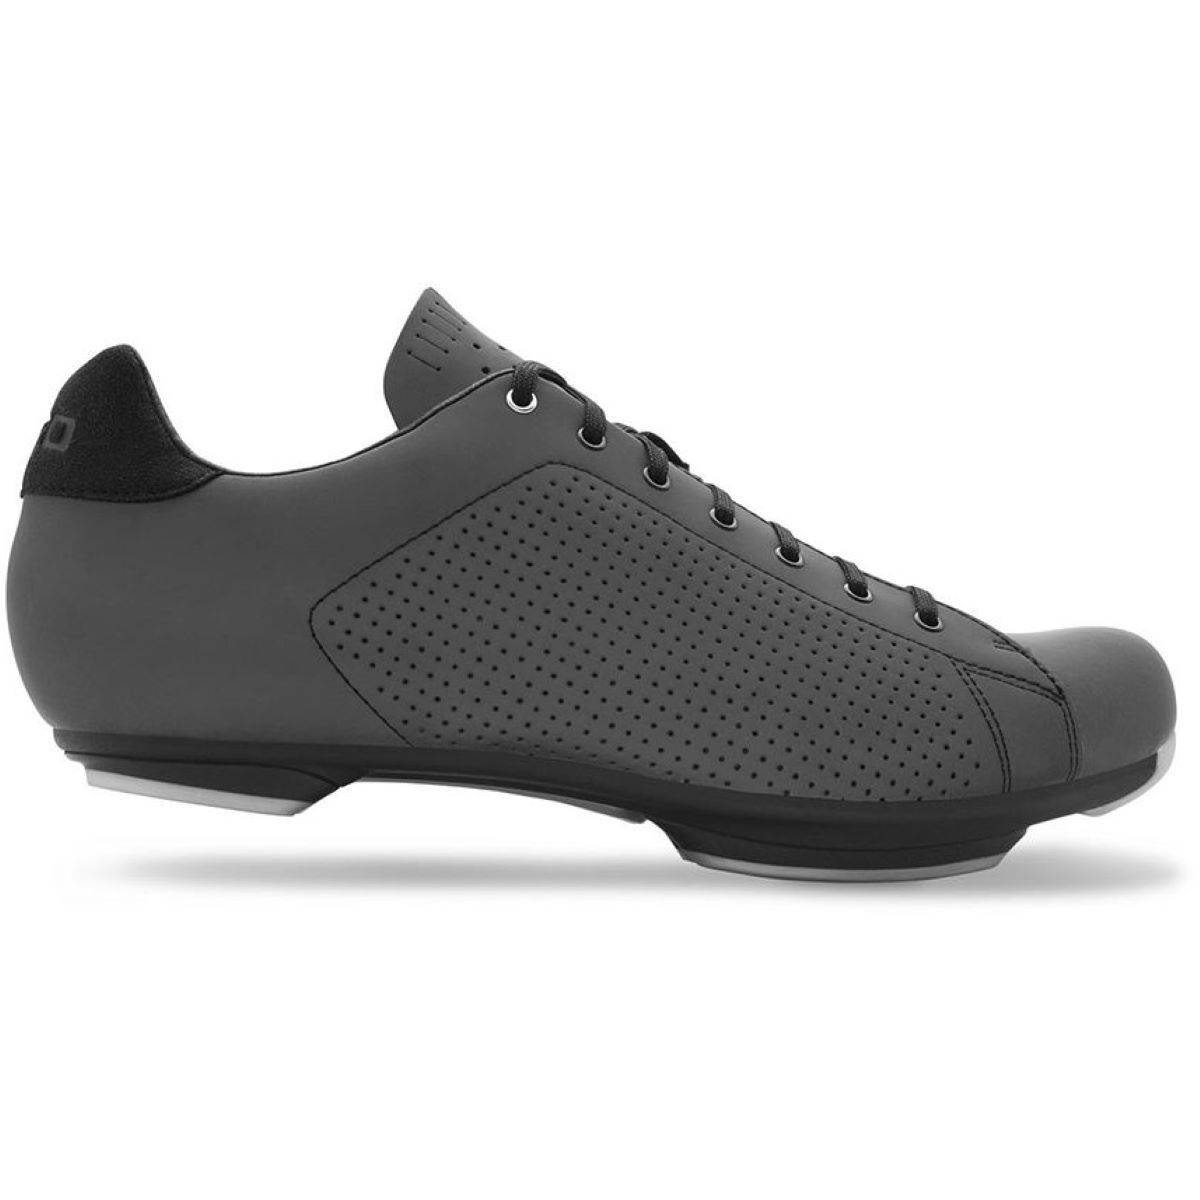 Giro Giro Republic LX Reflective Road Shoes   Cycling Shoes